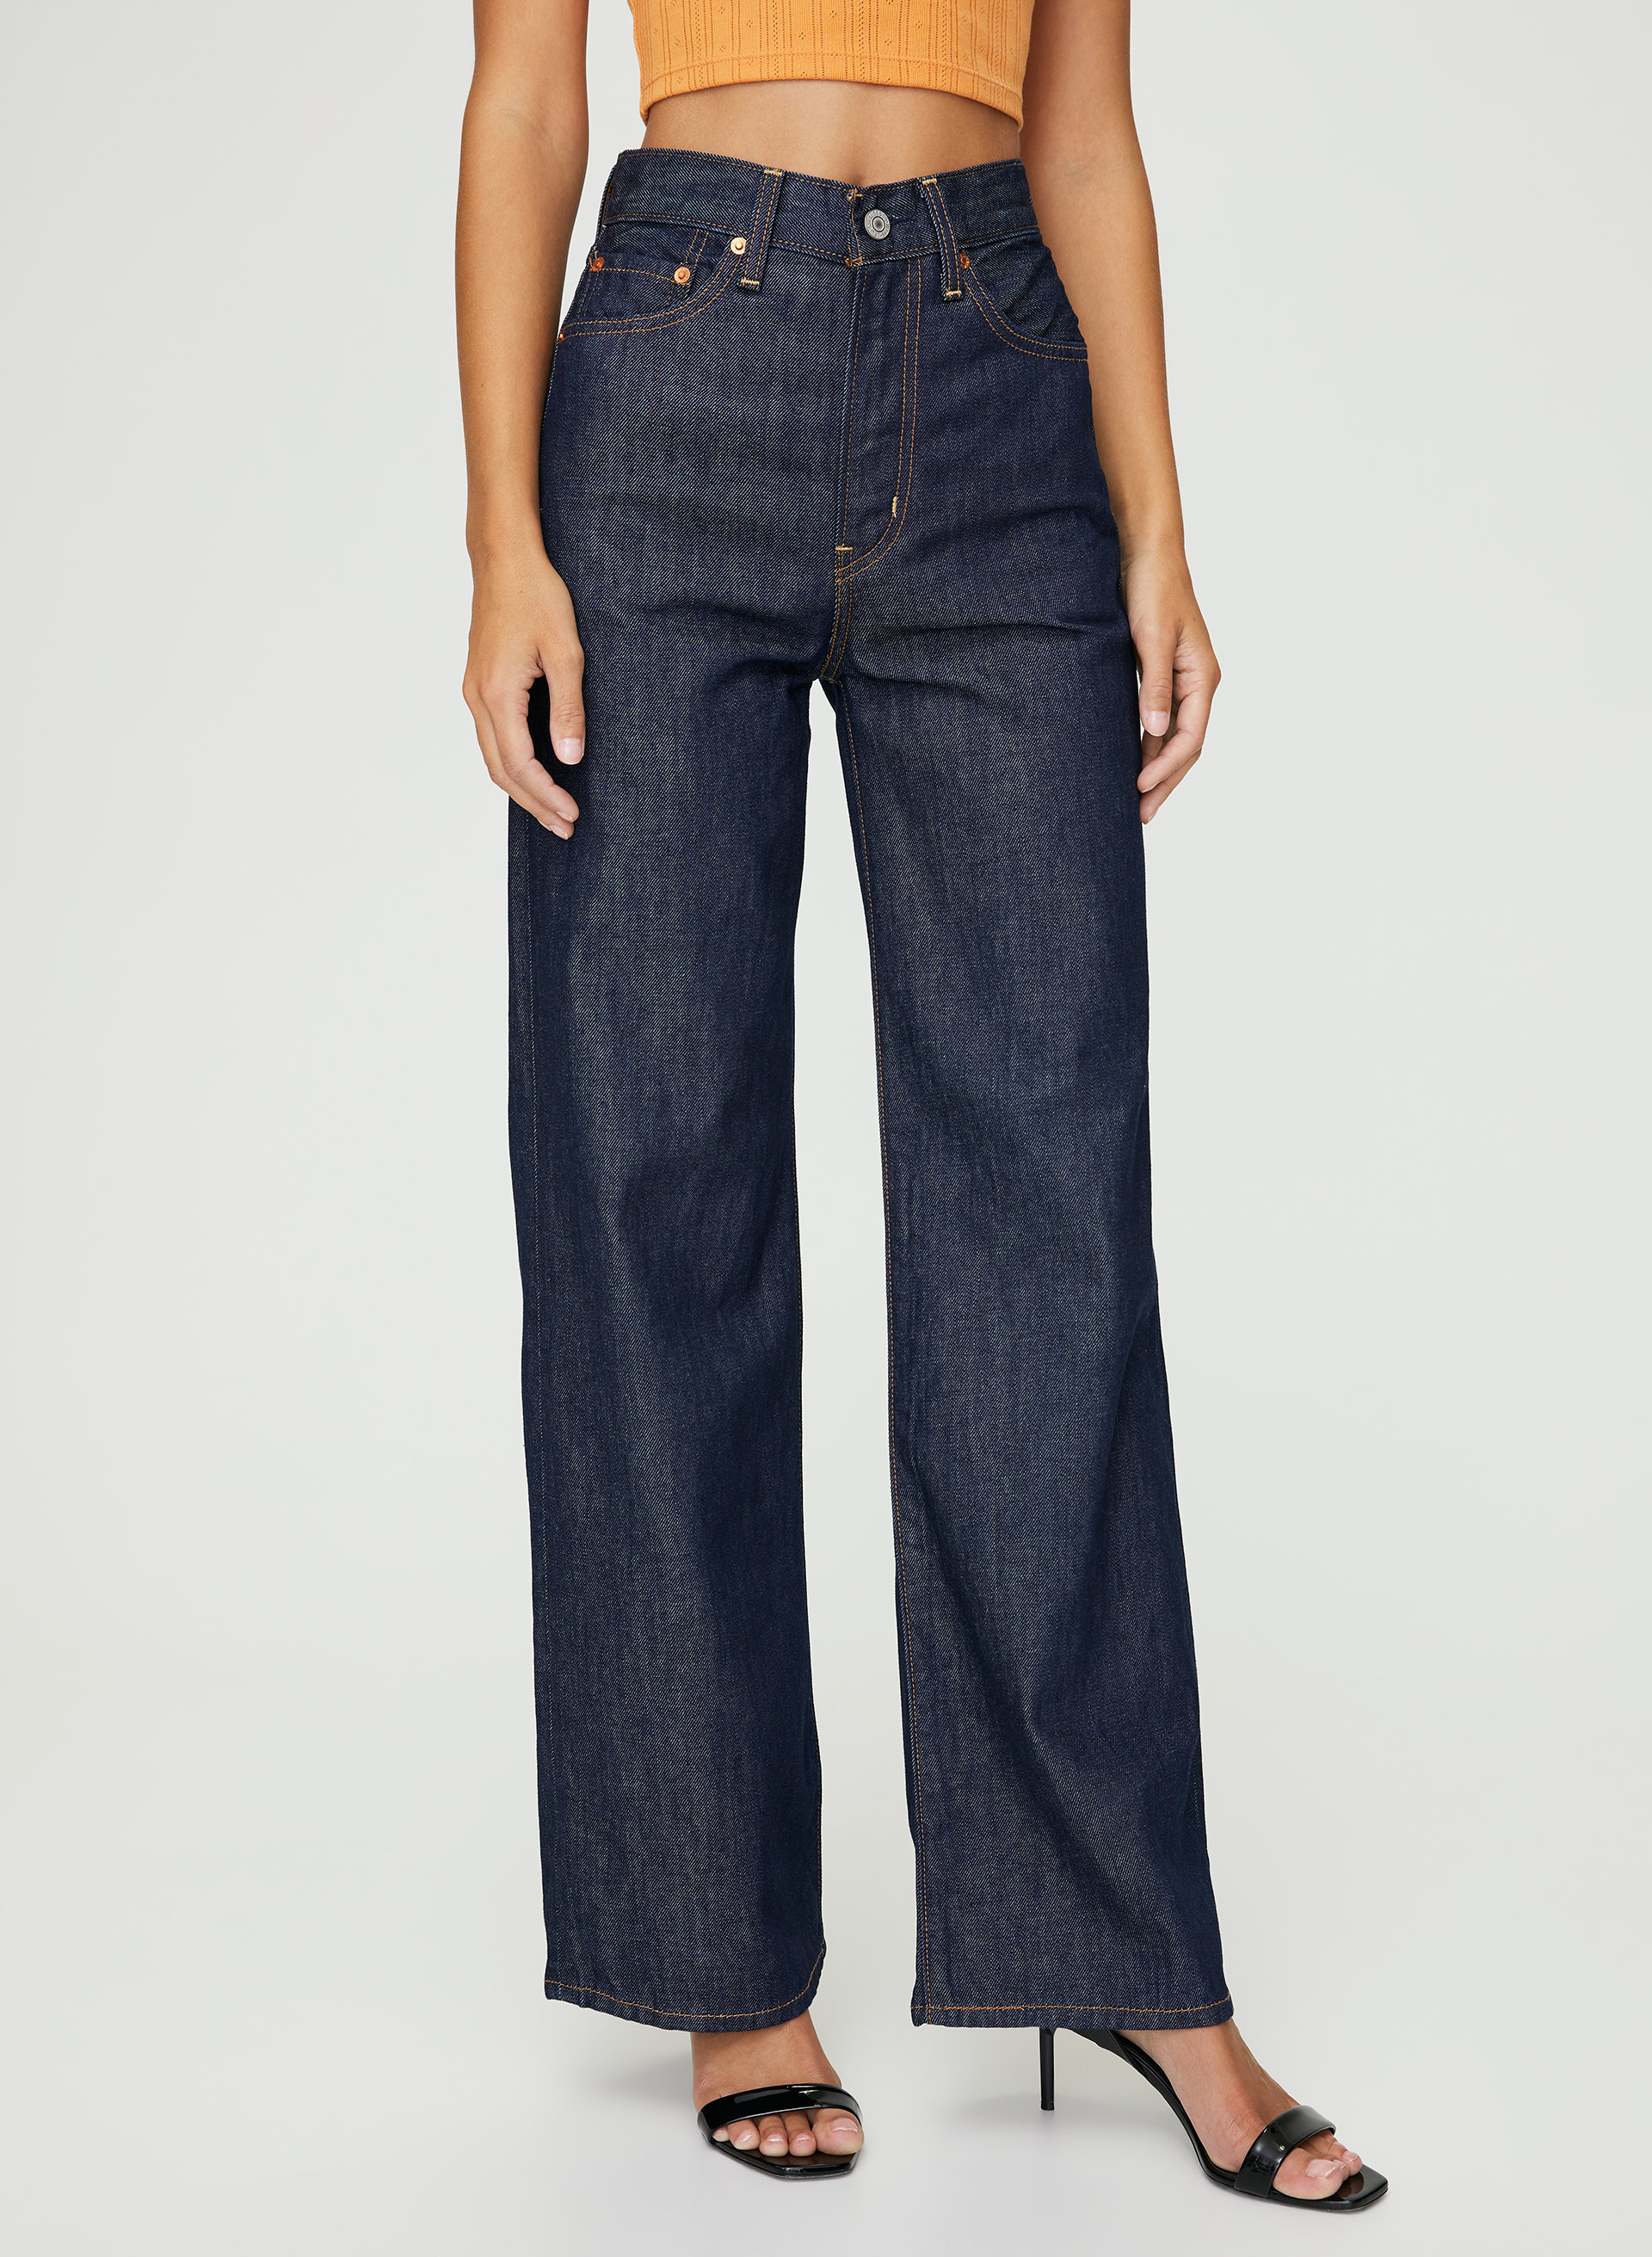 jeans-donna-boot cut